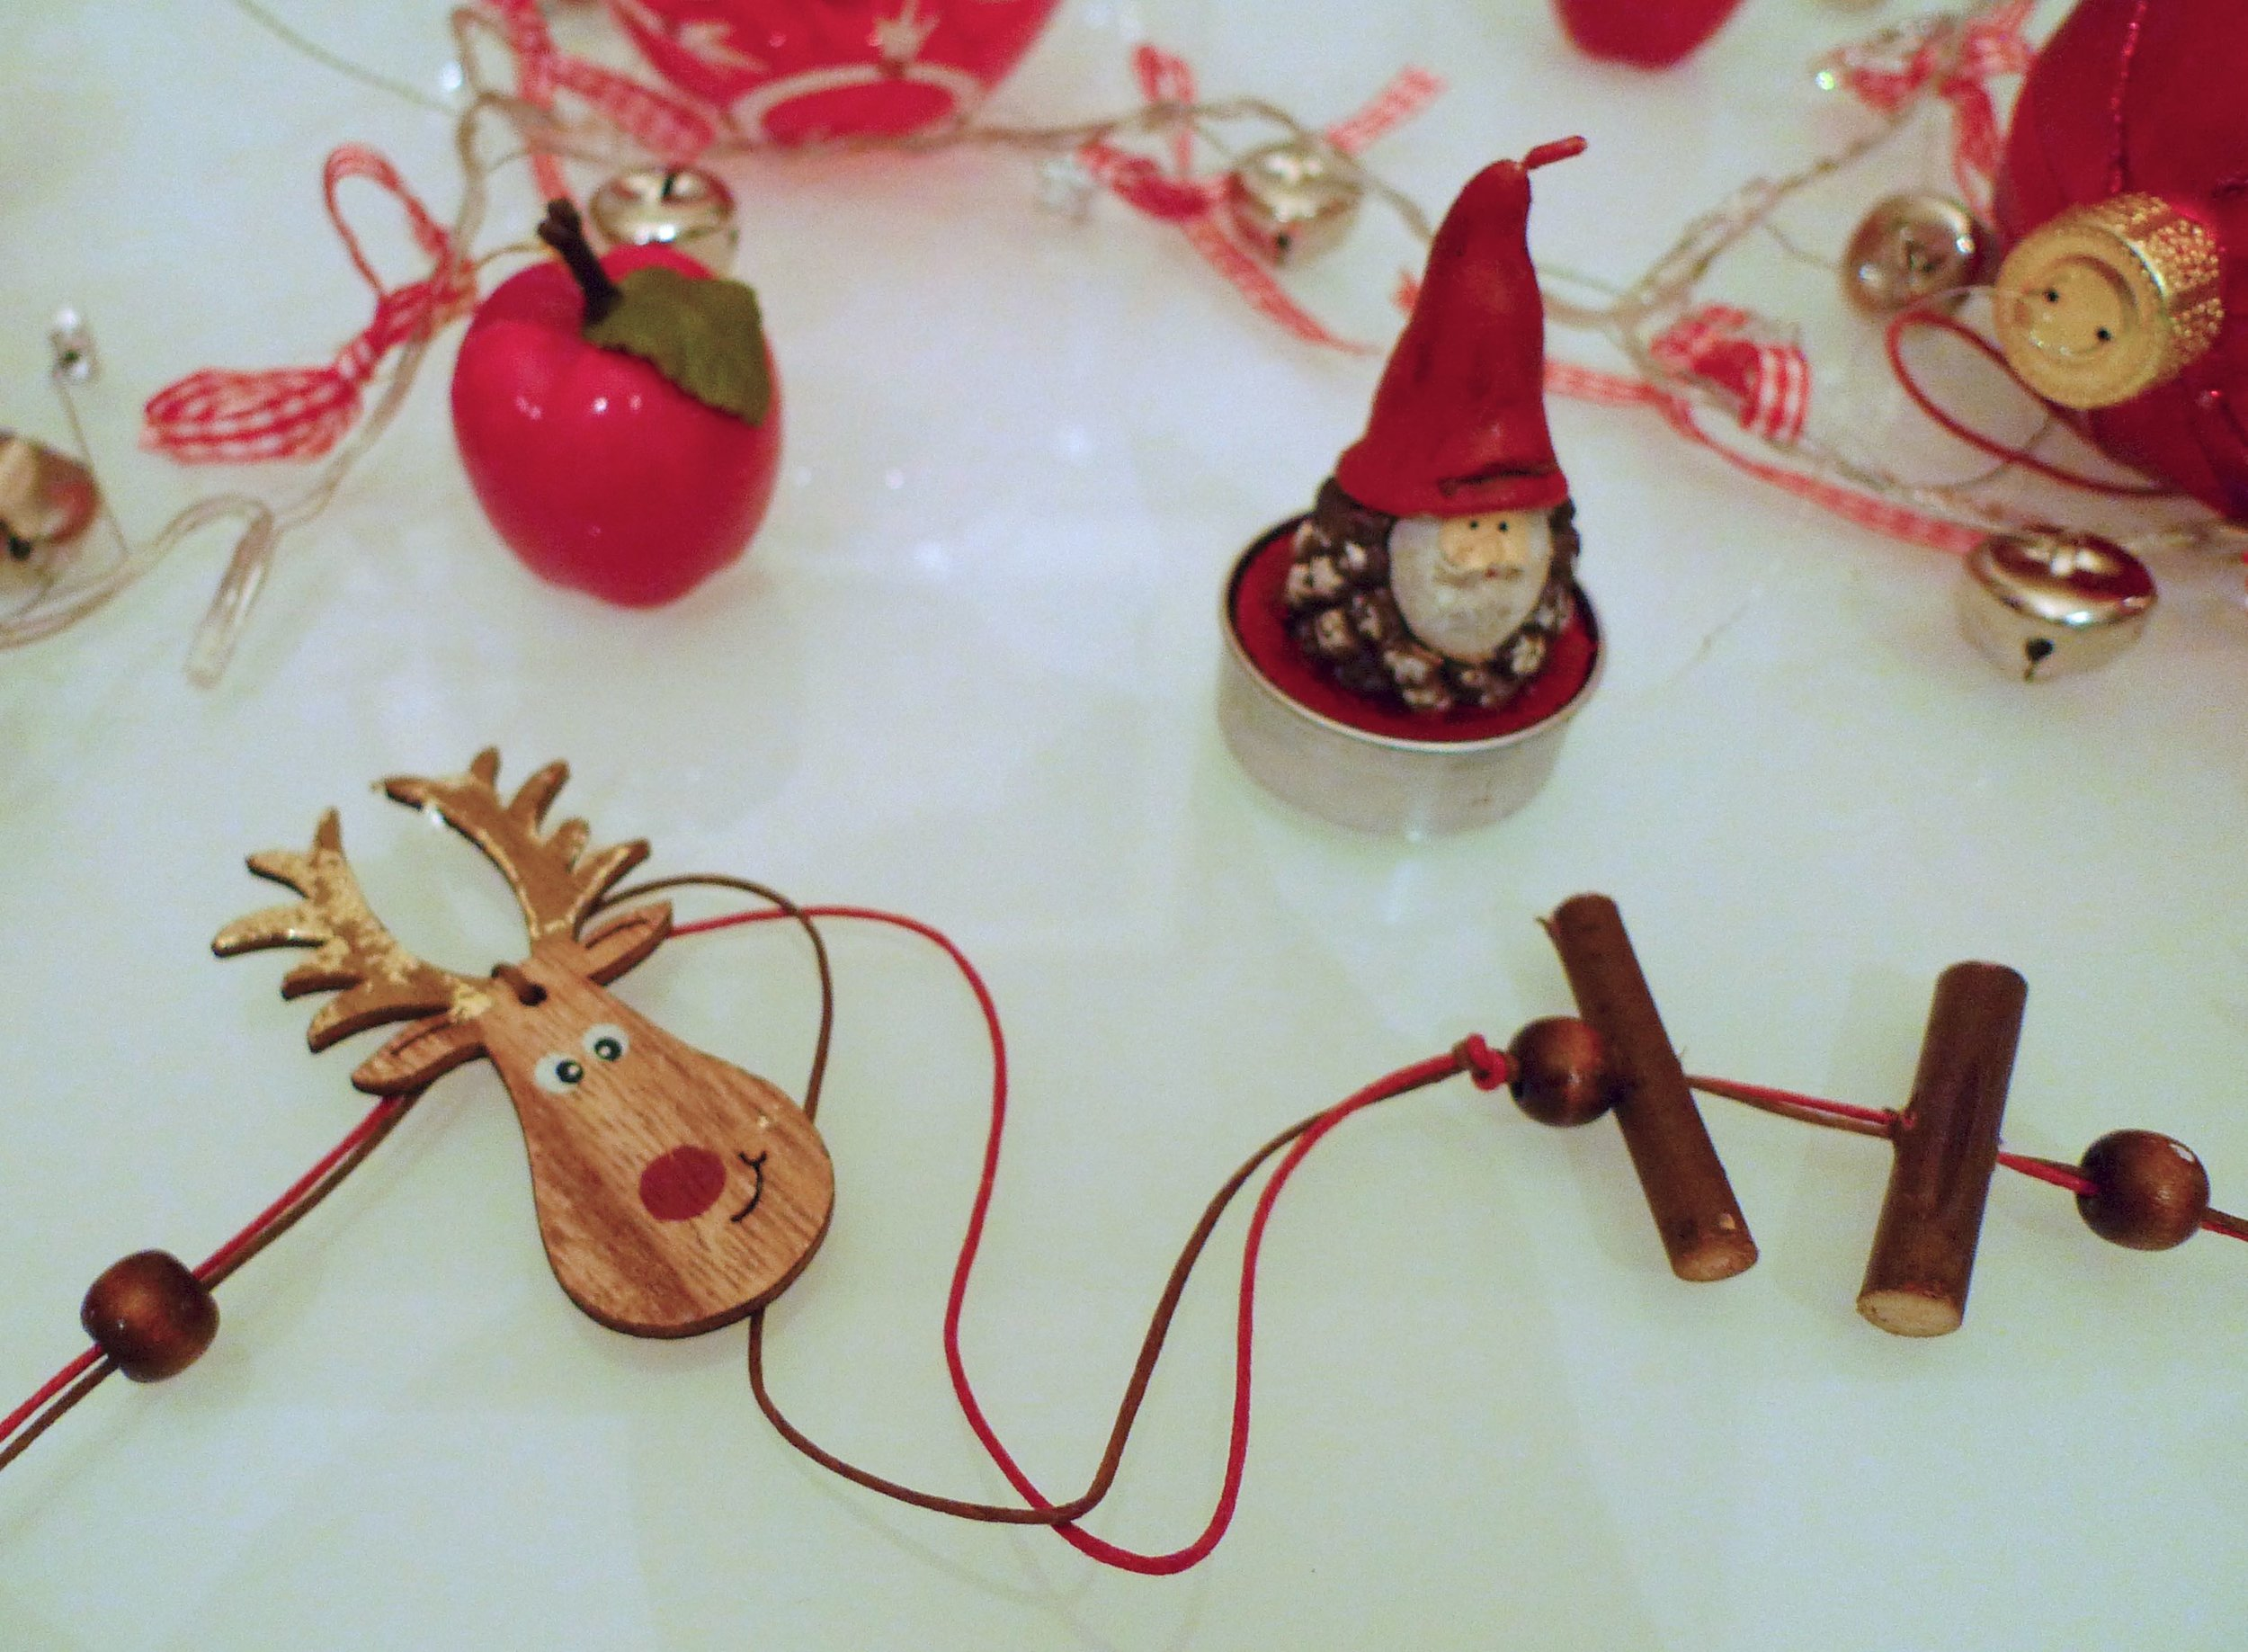 reindeers garlands, father christmas tea lighters and jingle bell lights from TK Maxx